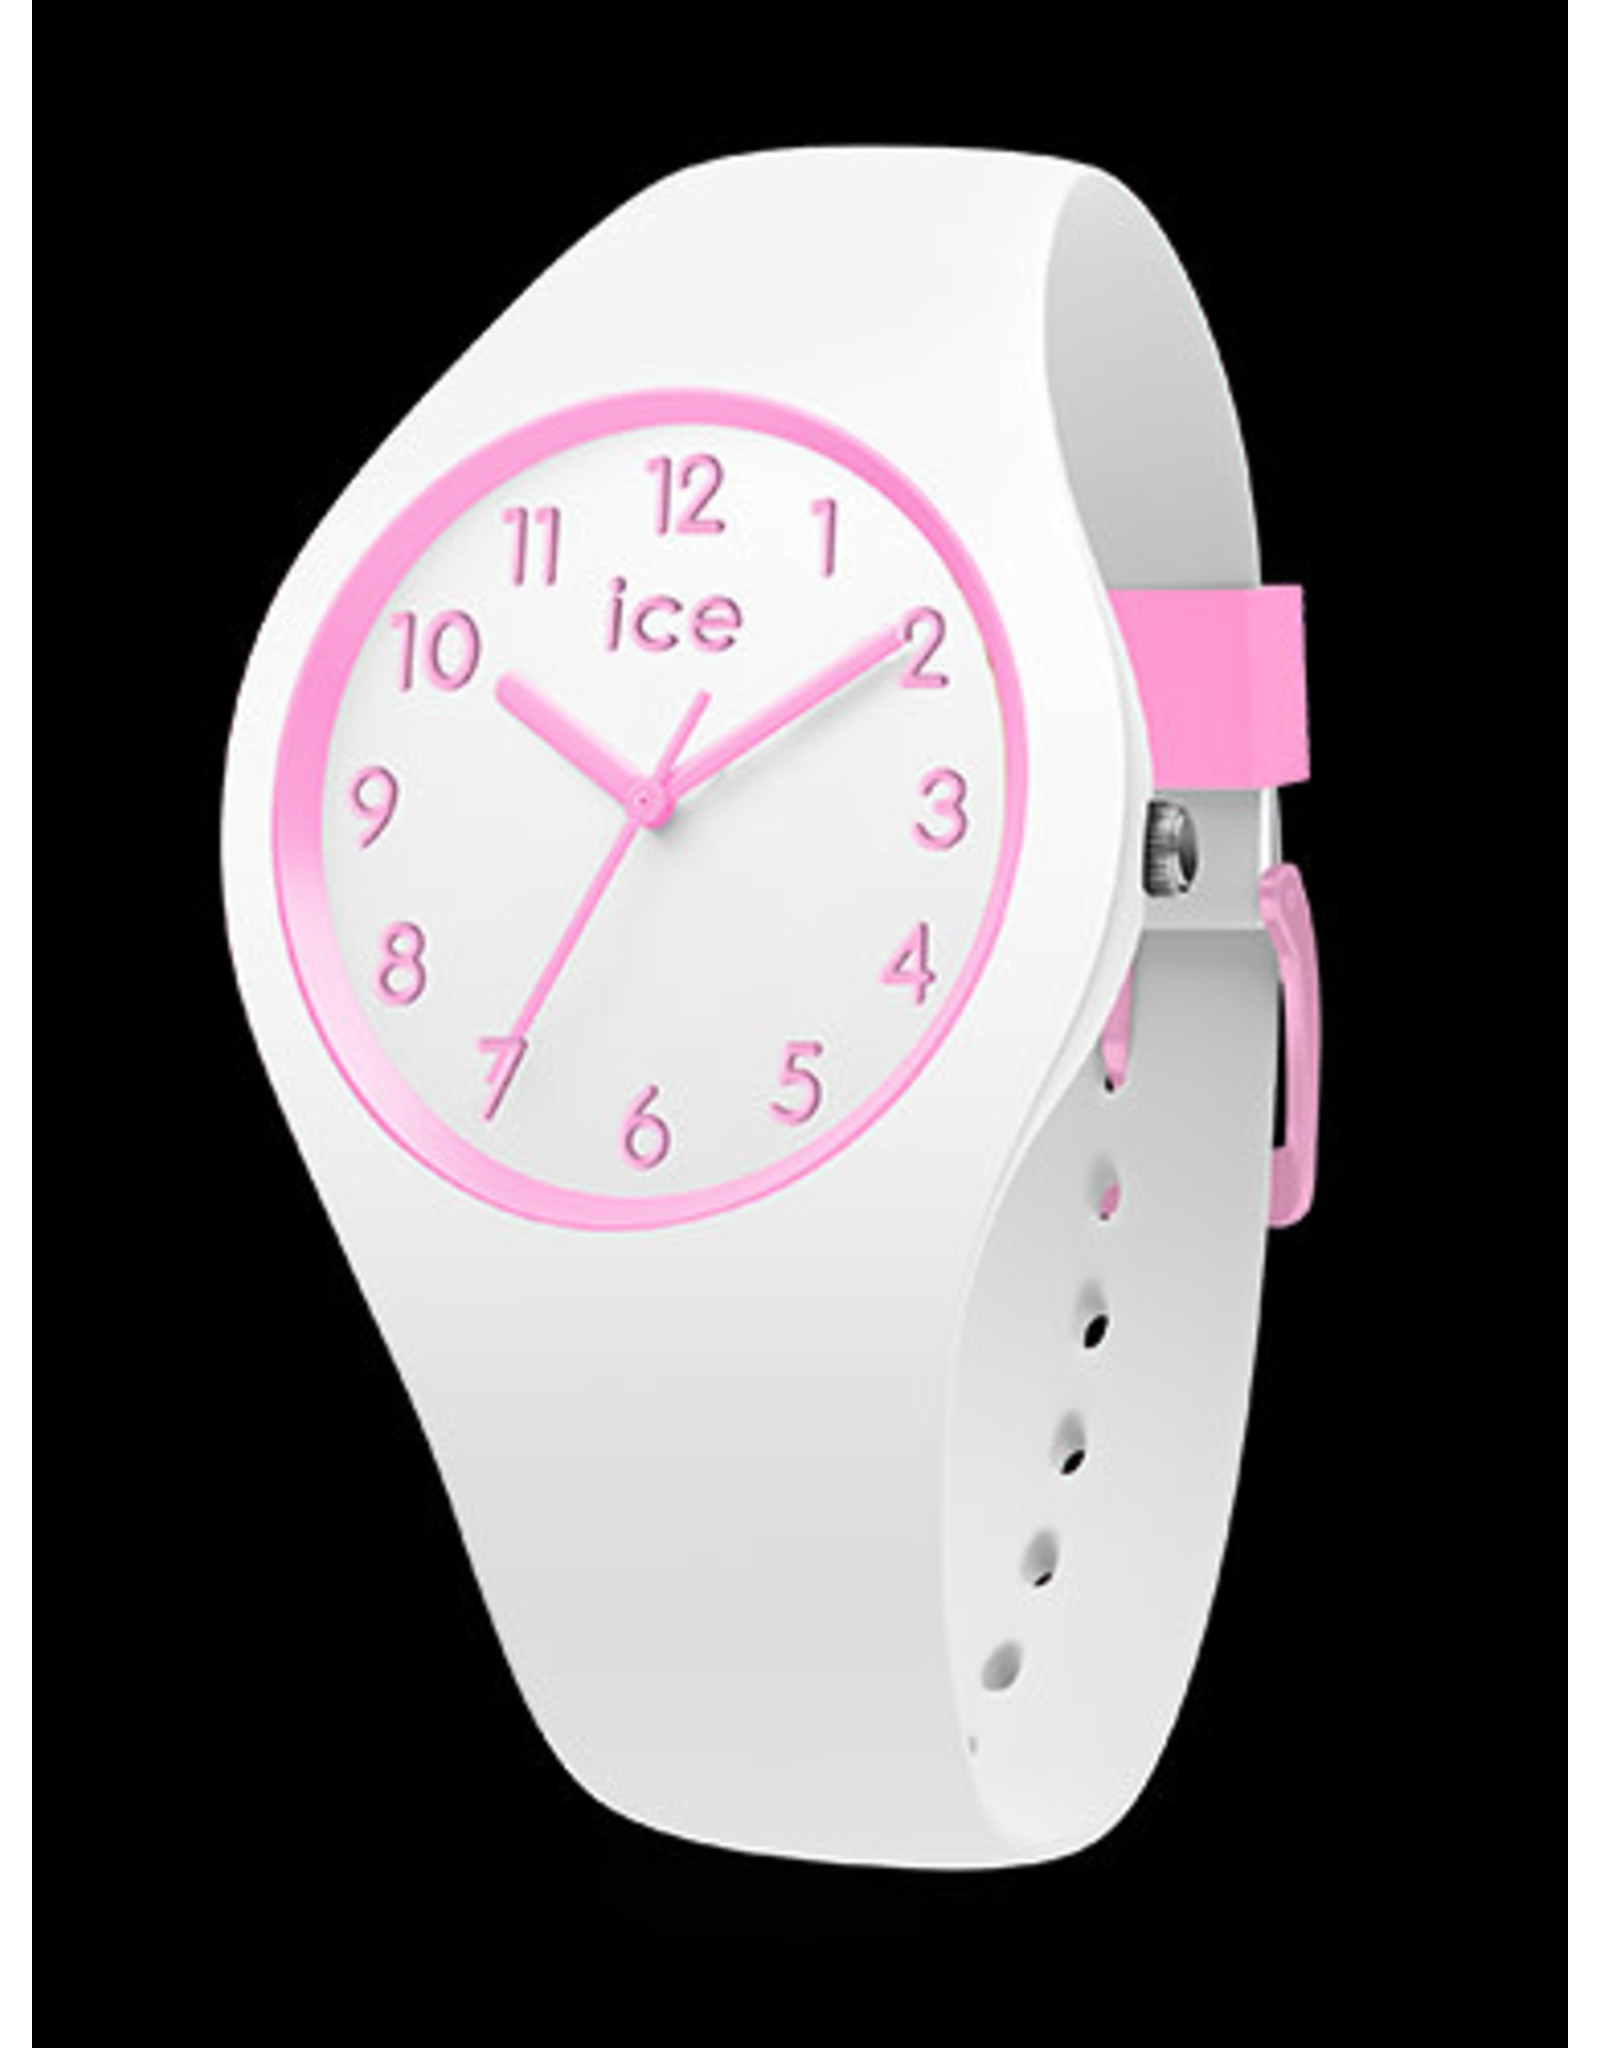 Ice Watch Ice Watch 014426 ICE Ola Candy White - Small